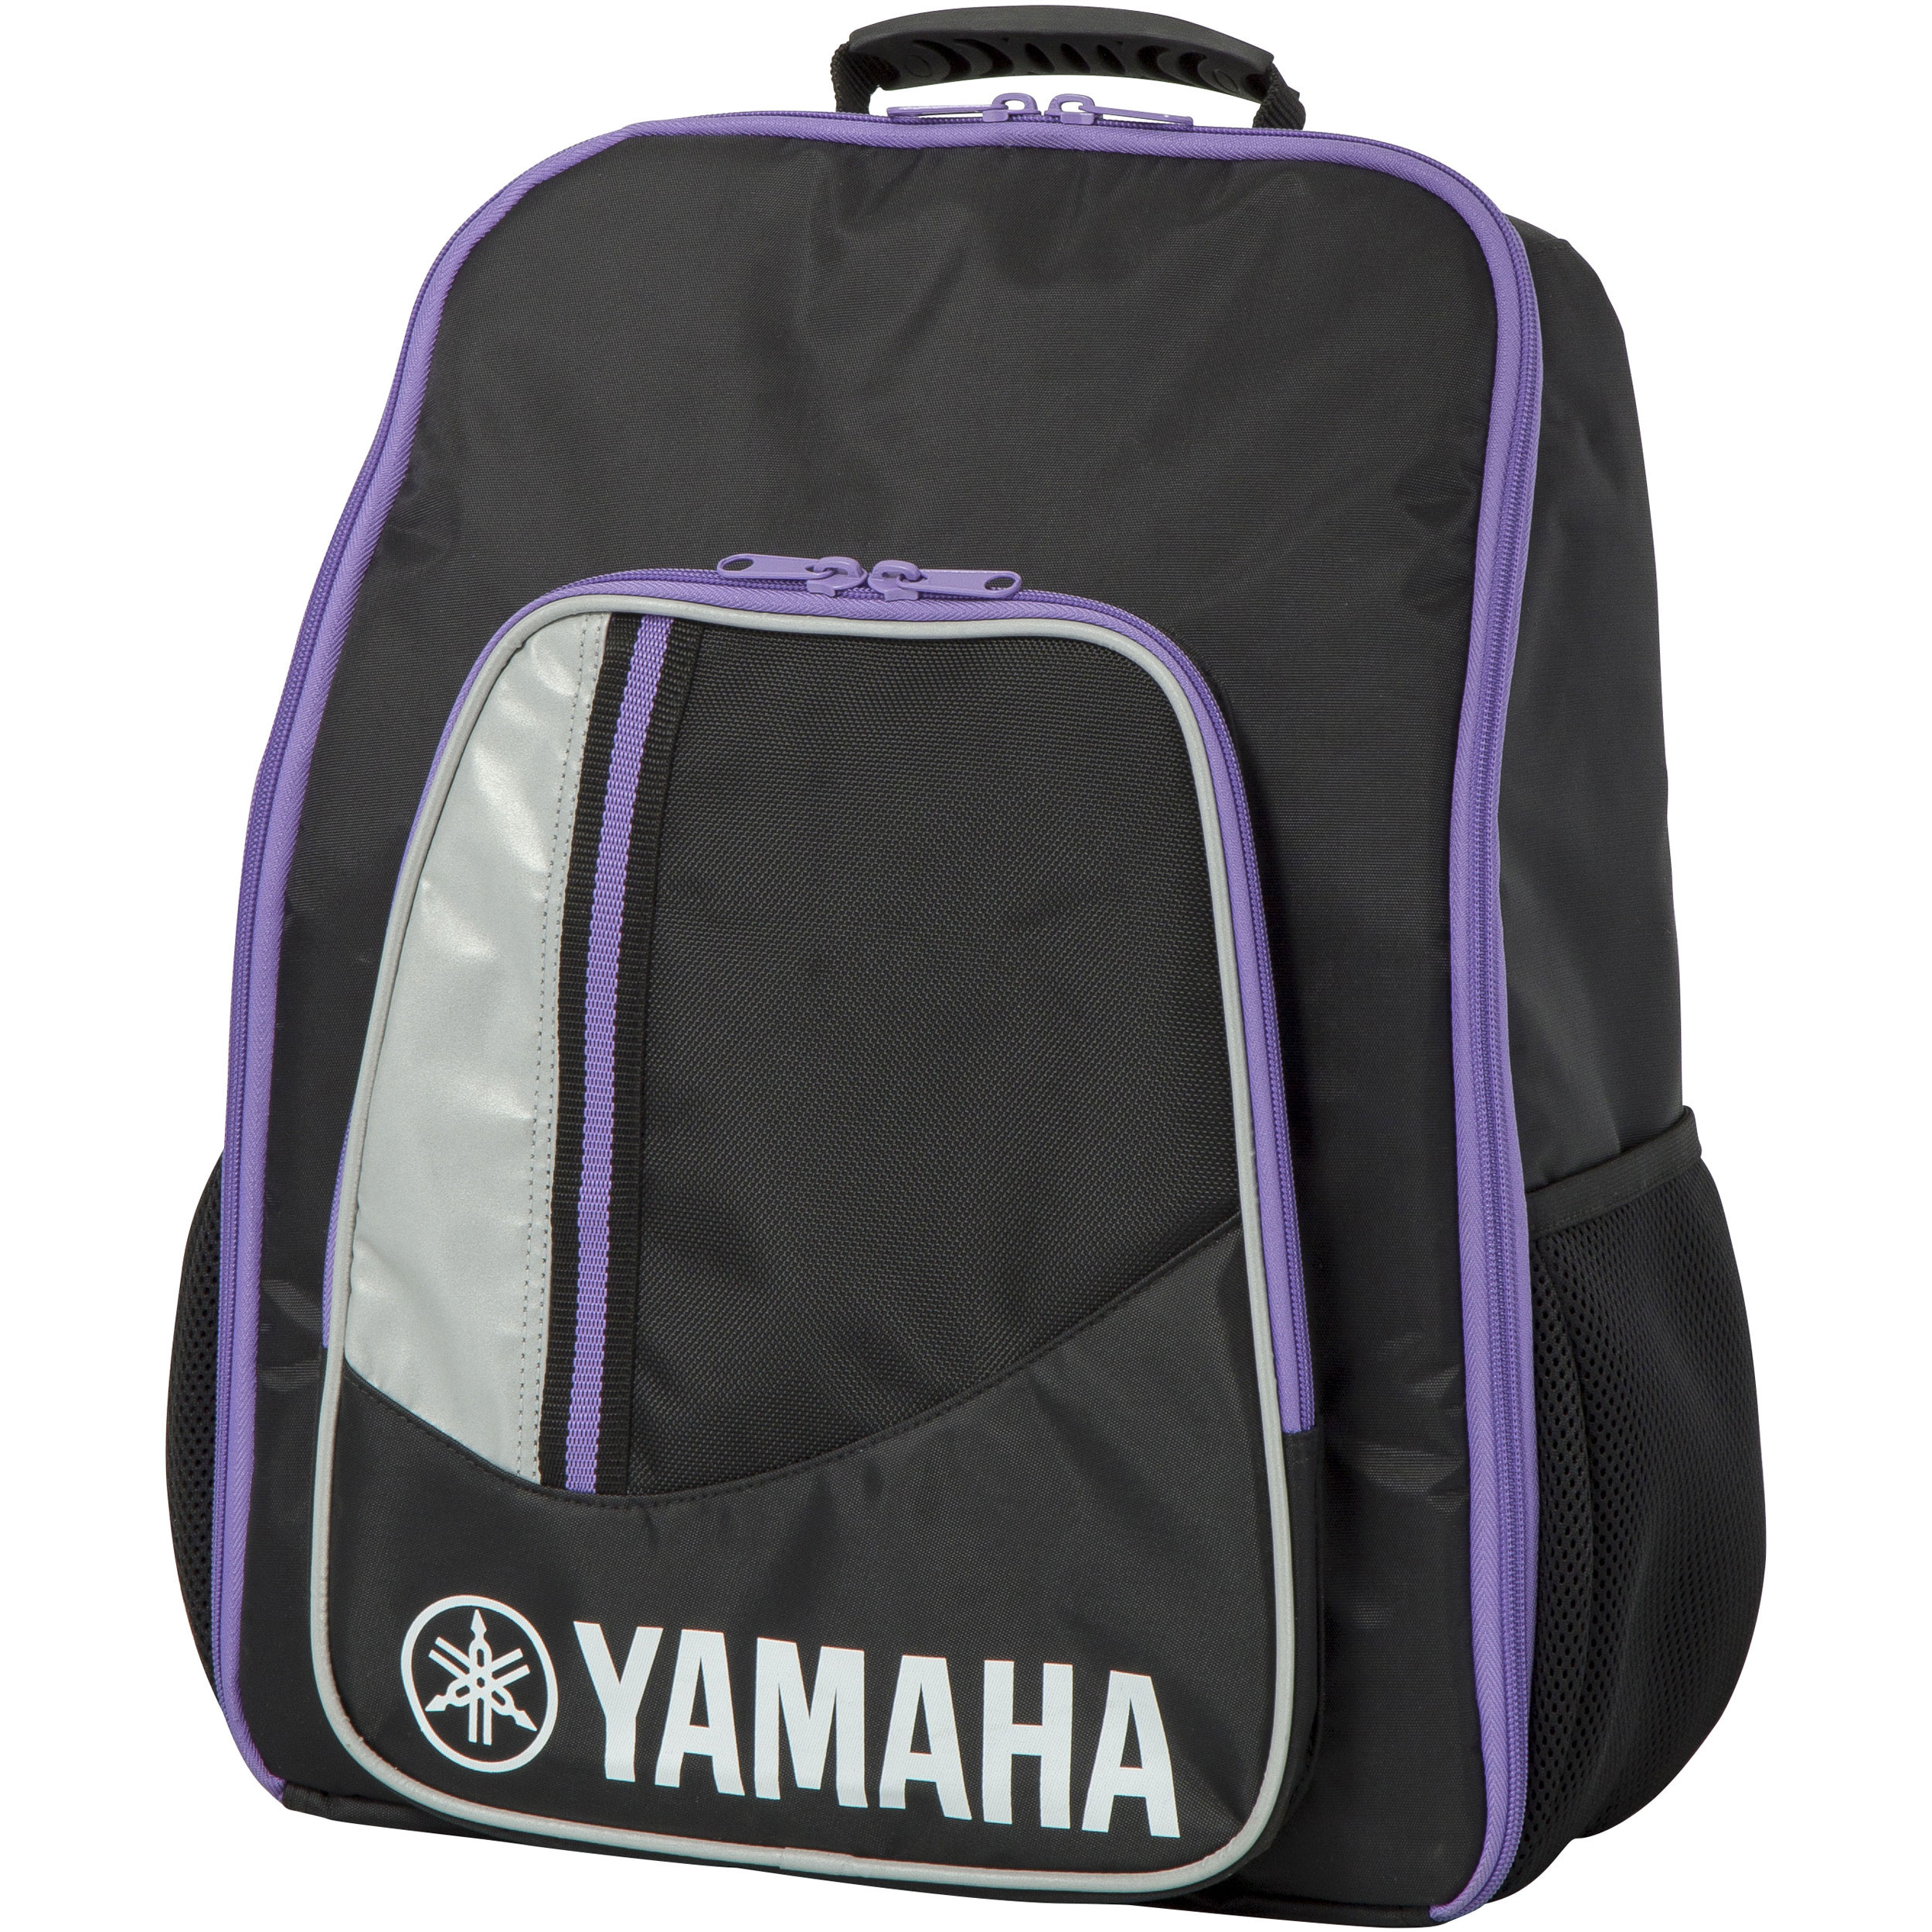 Yamaha student snare drum kit with backpack style bag sk 285 for Yamaha student bell kit with backpack and rolling cart